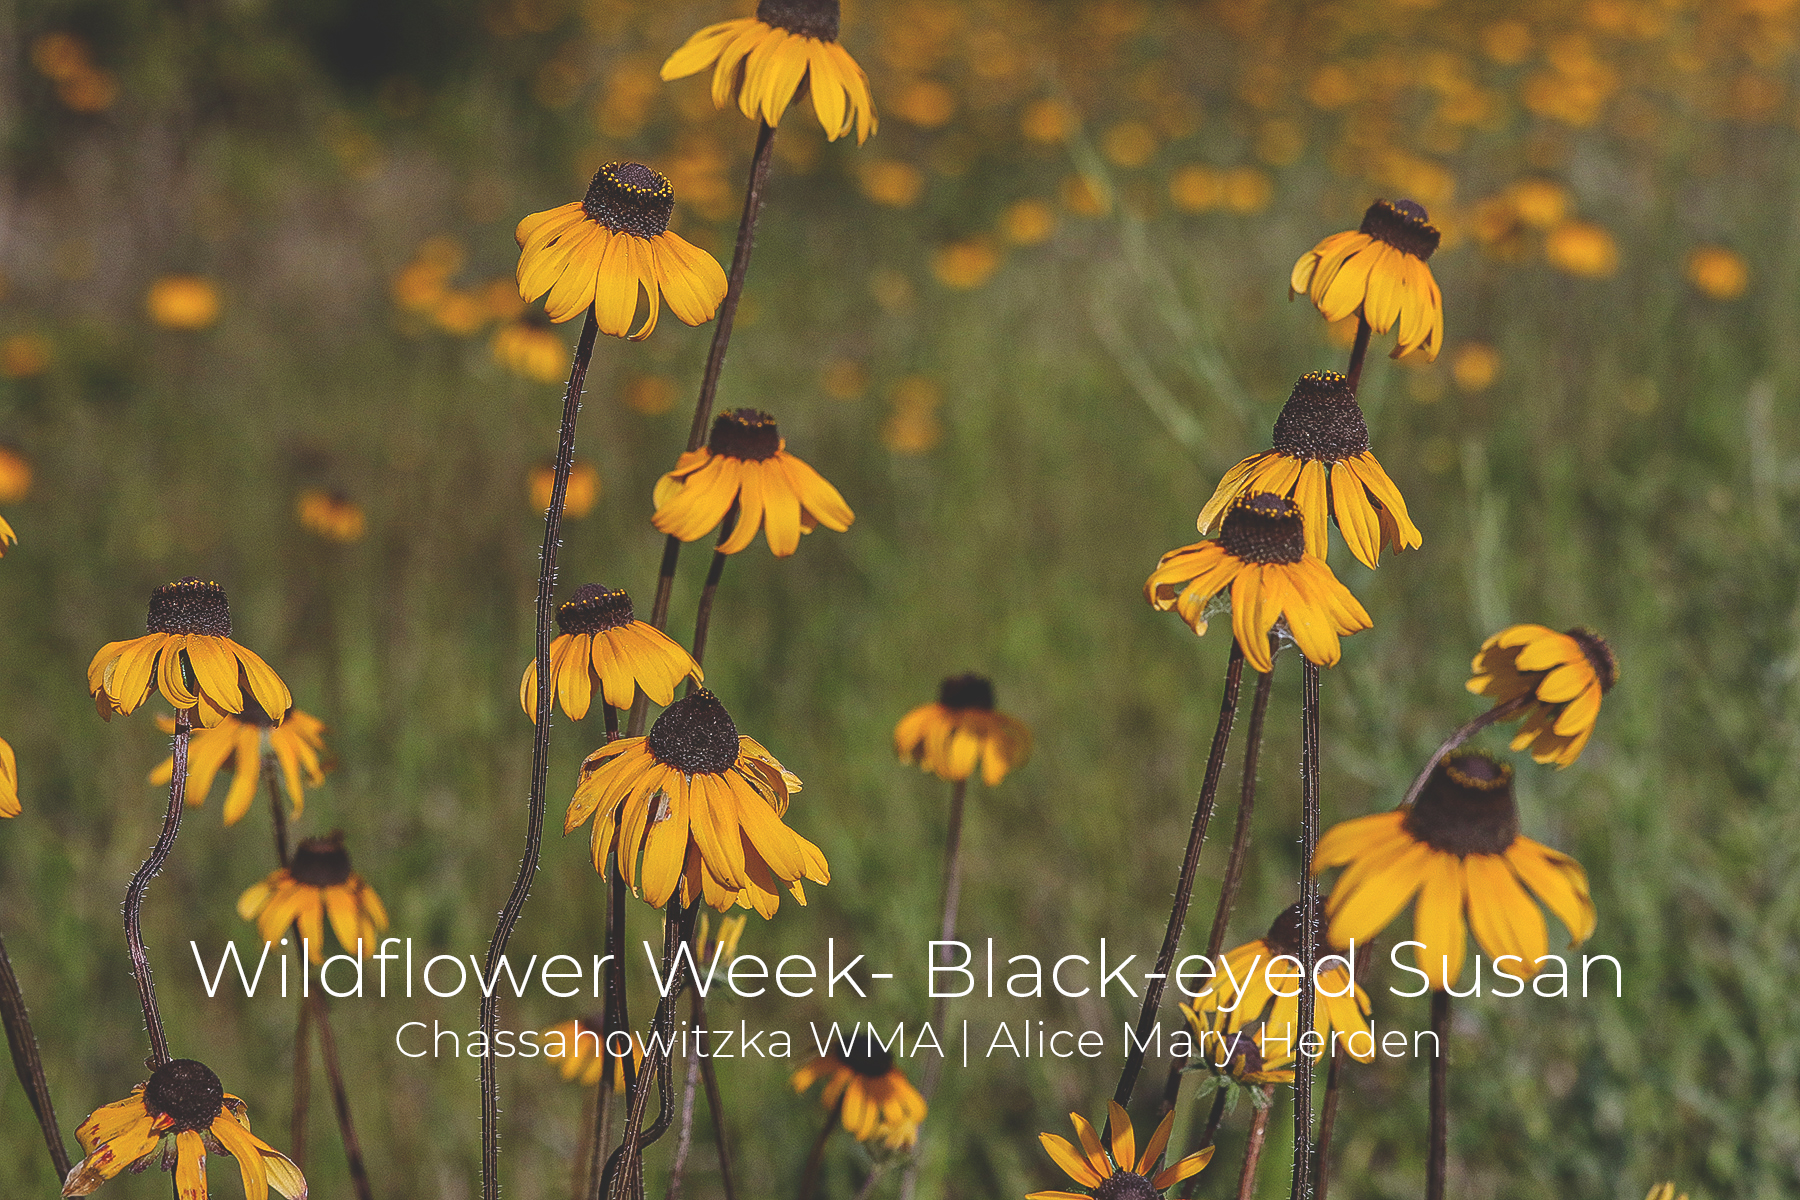 National Wildflower Week | Black-eyed Susan